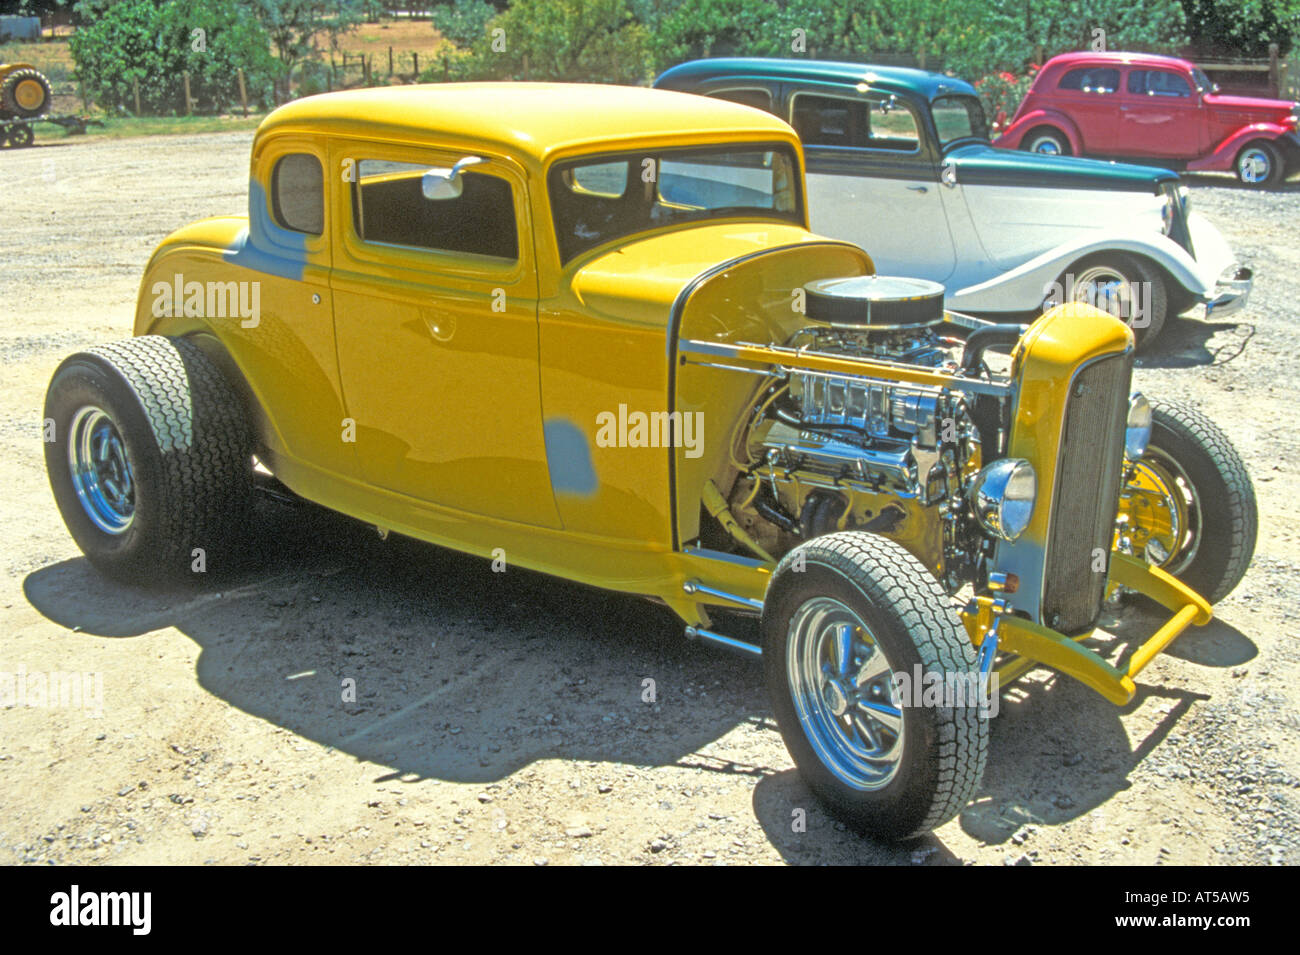 Yellow V8 hot rod coupe Stock Photo, Royalty Free Image: 9261332 - Alamy